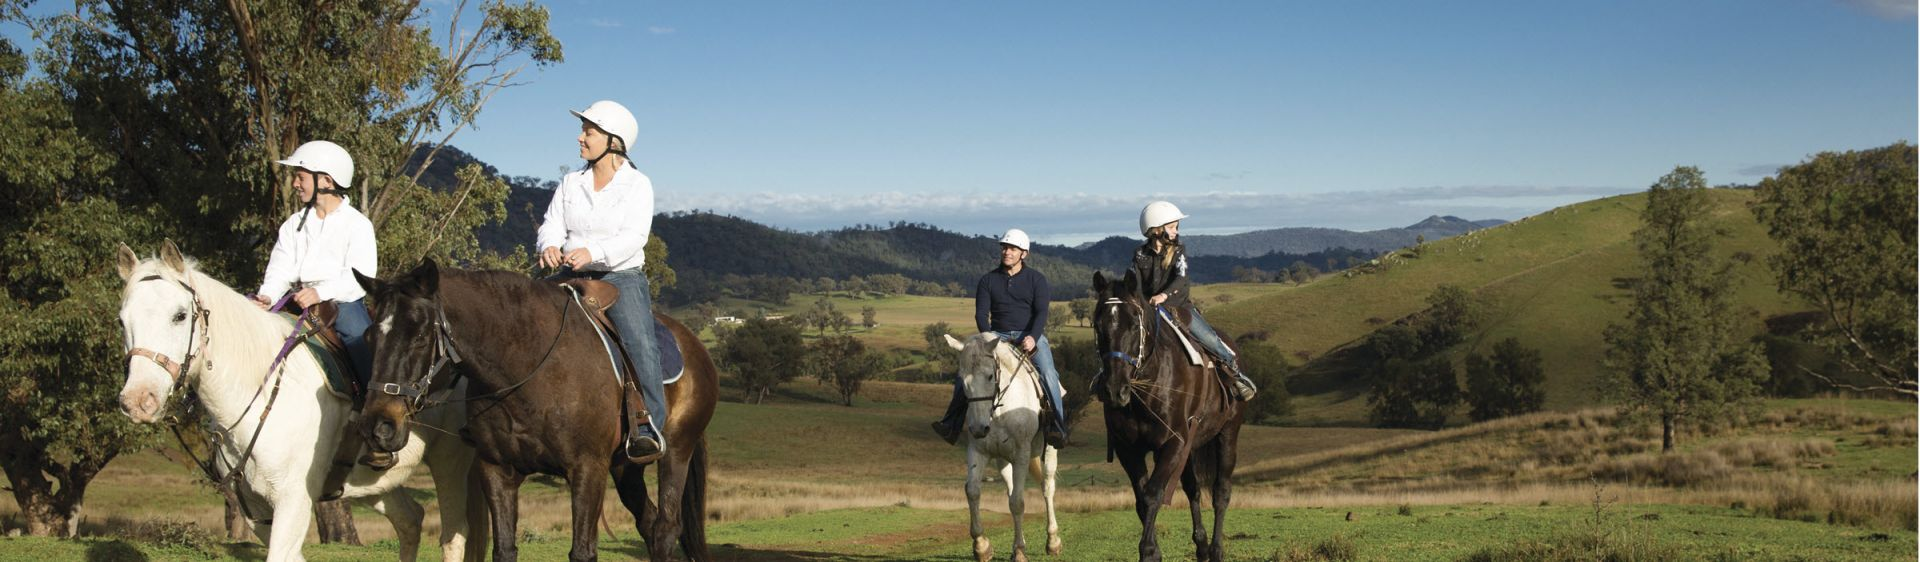 Tamworth & Kootingal Horse Riding Adventures, Tamworth